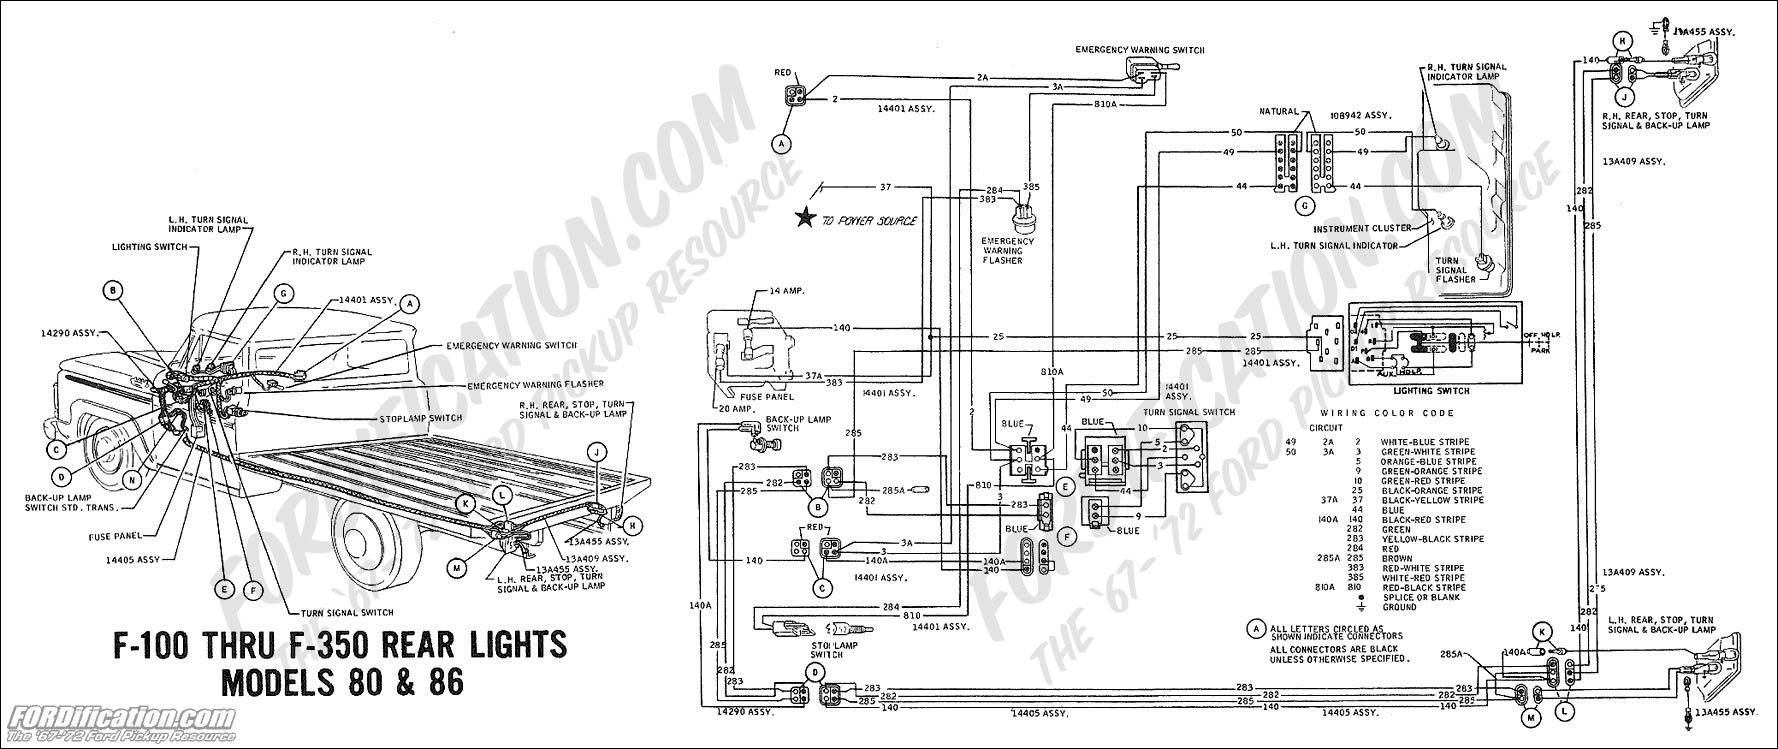 1969 f-100 thru f-350 rear lights (models 80 & 86) ford truck technical  drawings and schematics